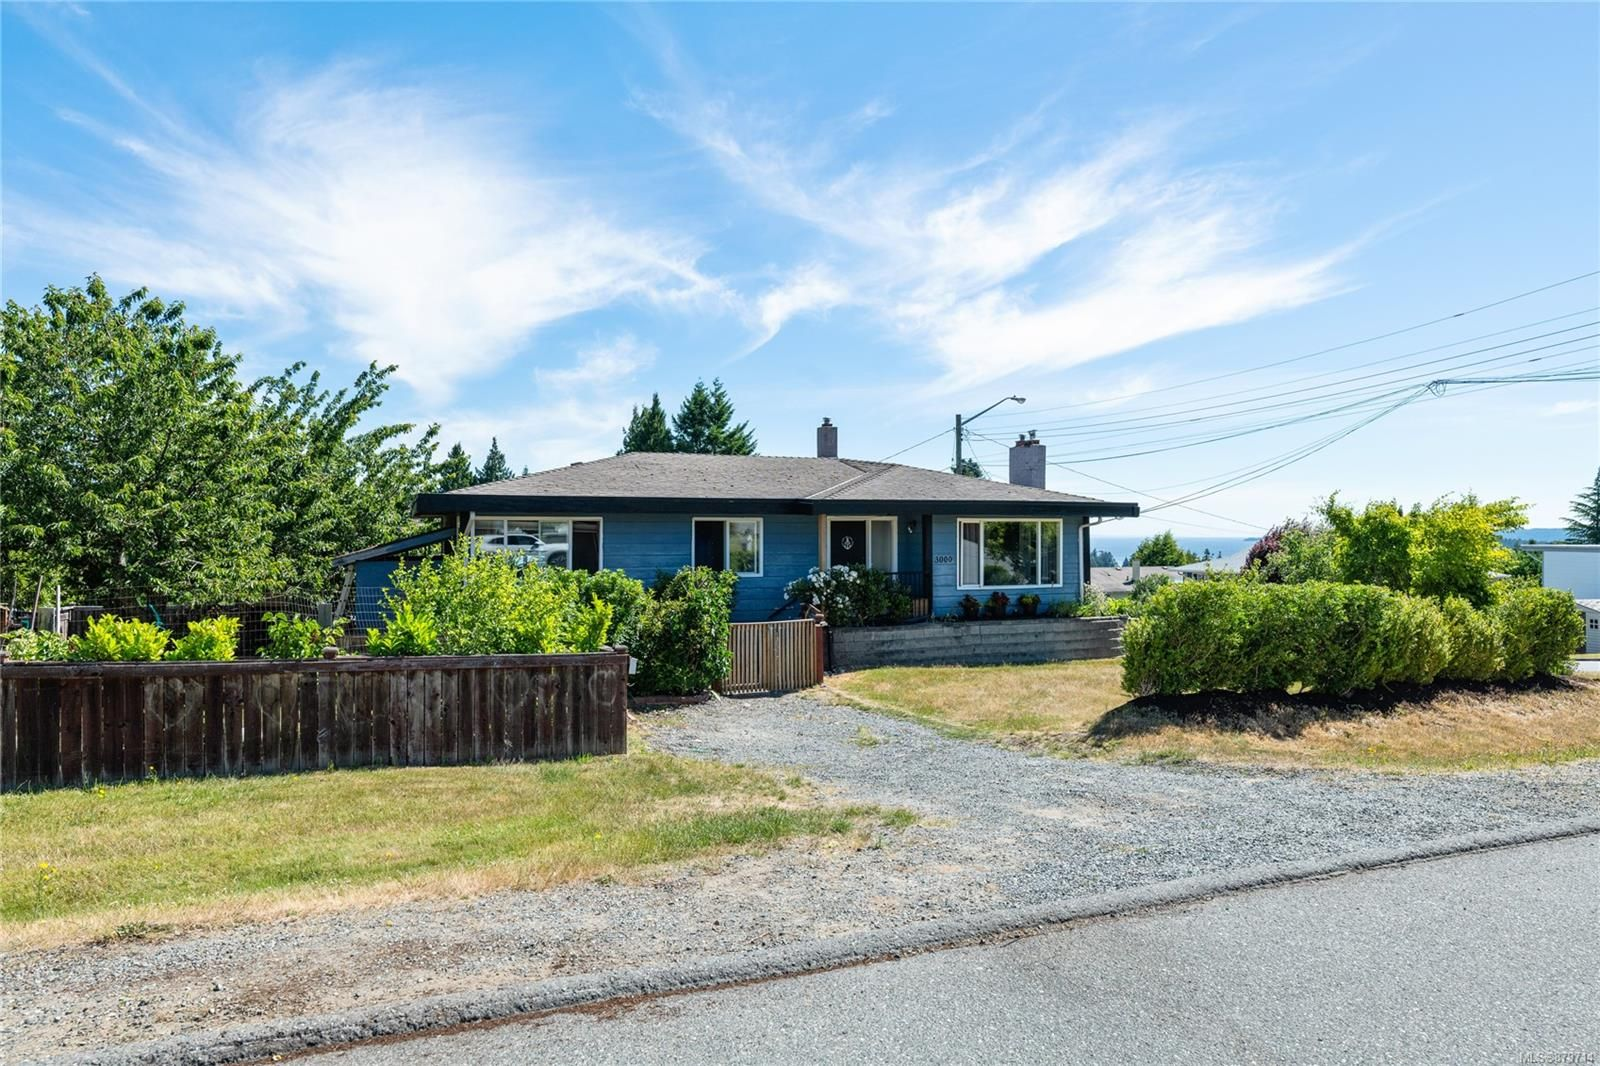 Main Photo: 3000 Glen Eagle Cres in : Na Departure Bay House for sale (Nanaimo)  : MLS®# 879714